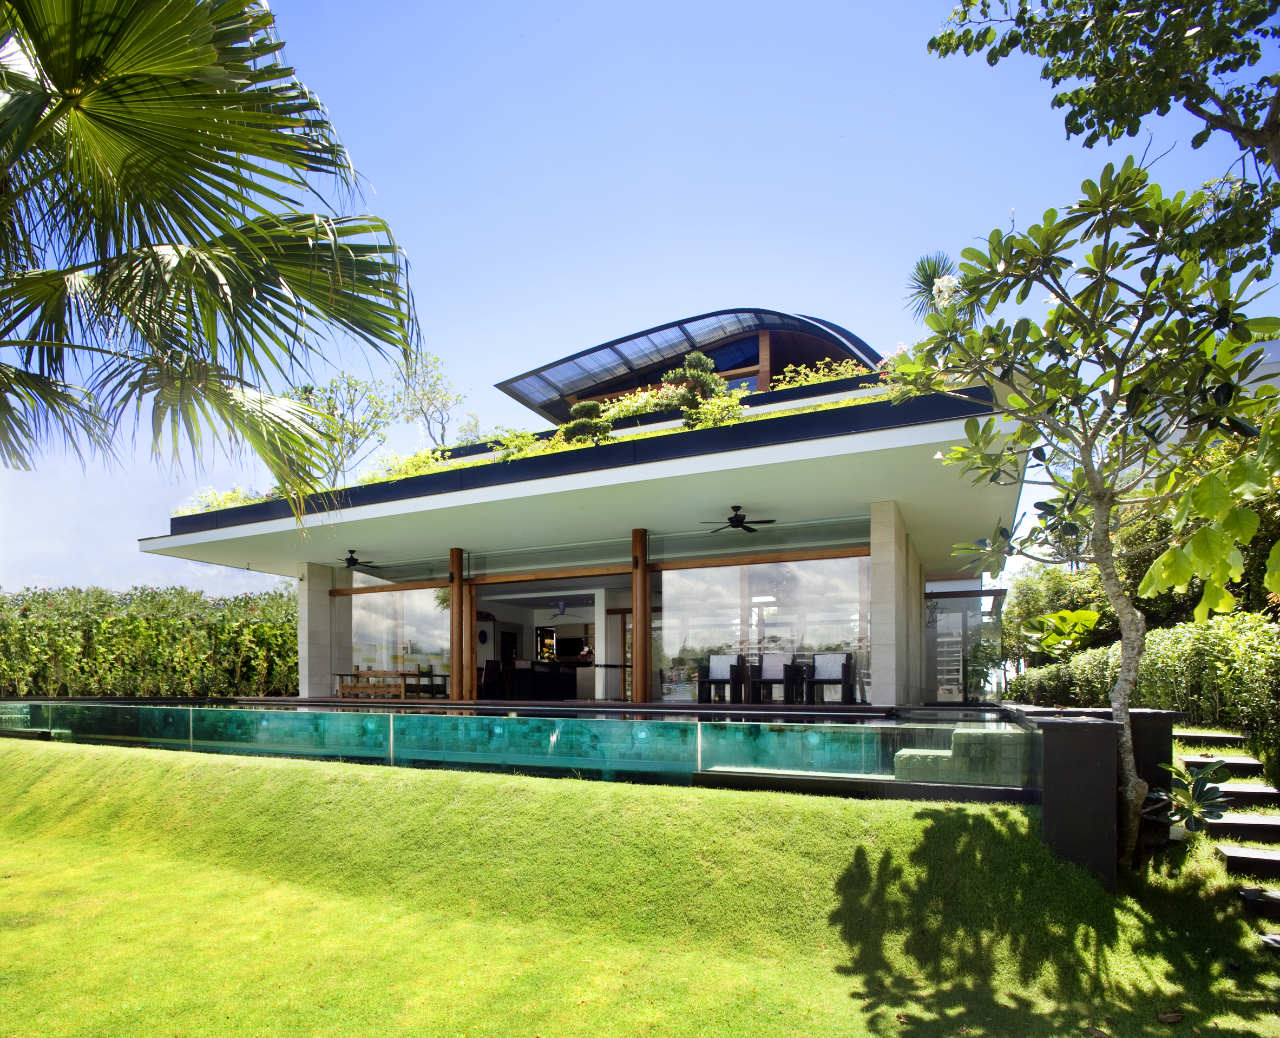 environmentally-sustainable-house-design-technology-green-energy-eco-friendly-nature-35433